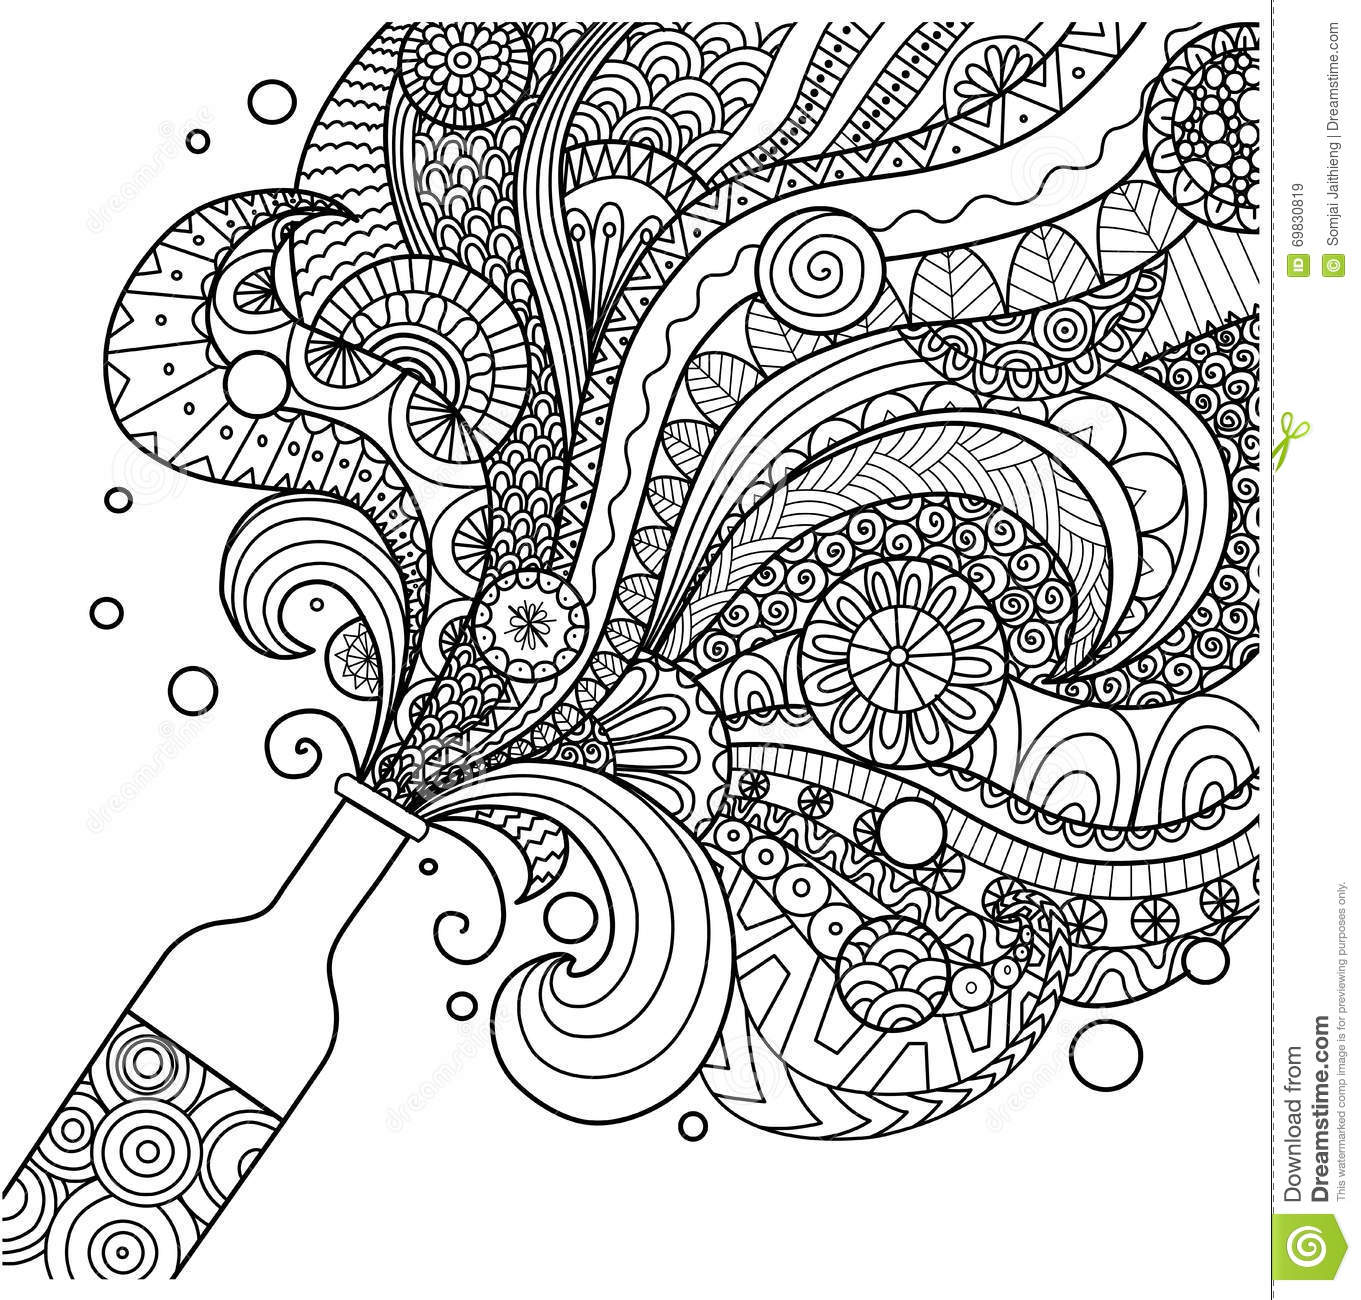 Line Art Free : Champagne bottle line art design for coloring book